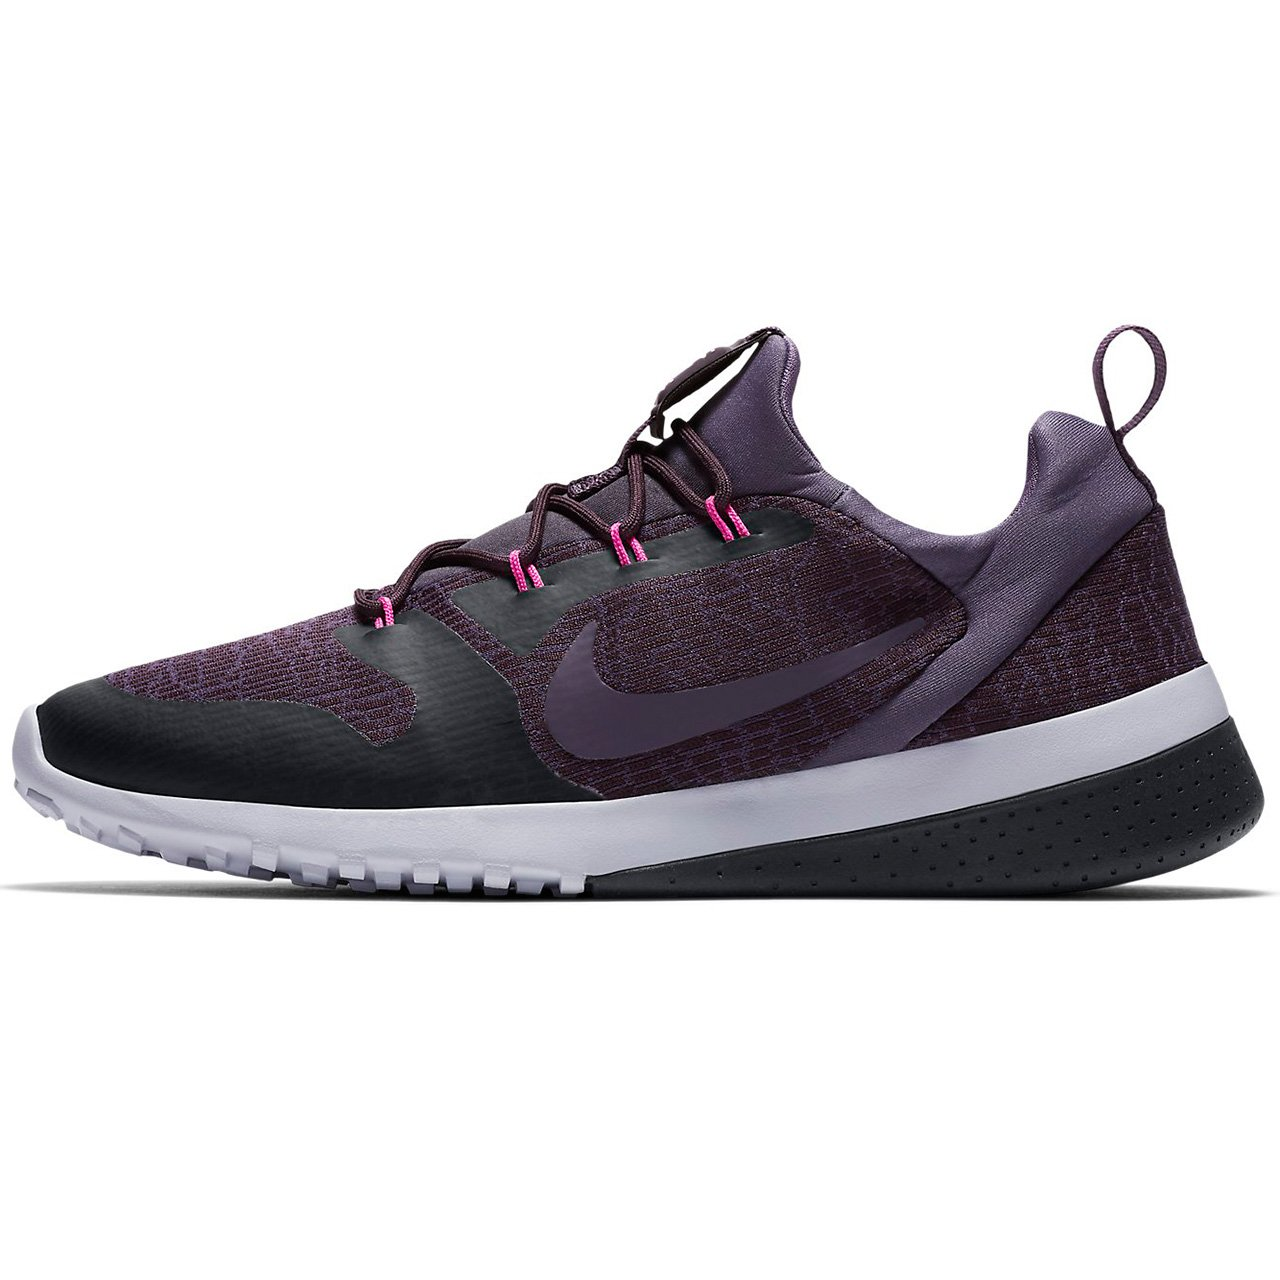 NIKE Air Zoom 90 Spikeless Golf Shoes 2017 Women B06W52K949 8 B(M) US|Port Wine/Dark Raisin-deadly Pink